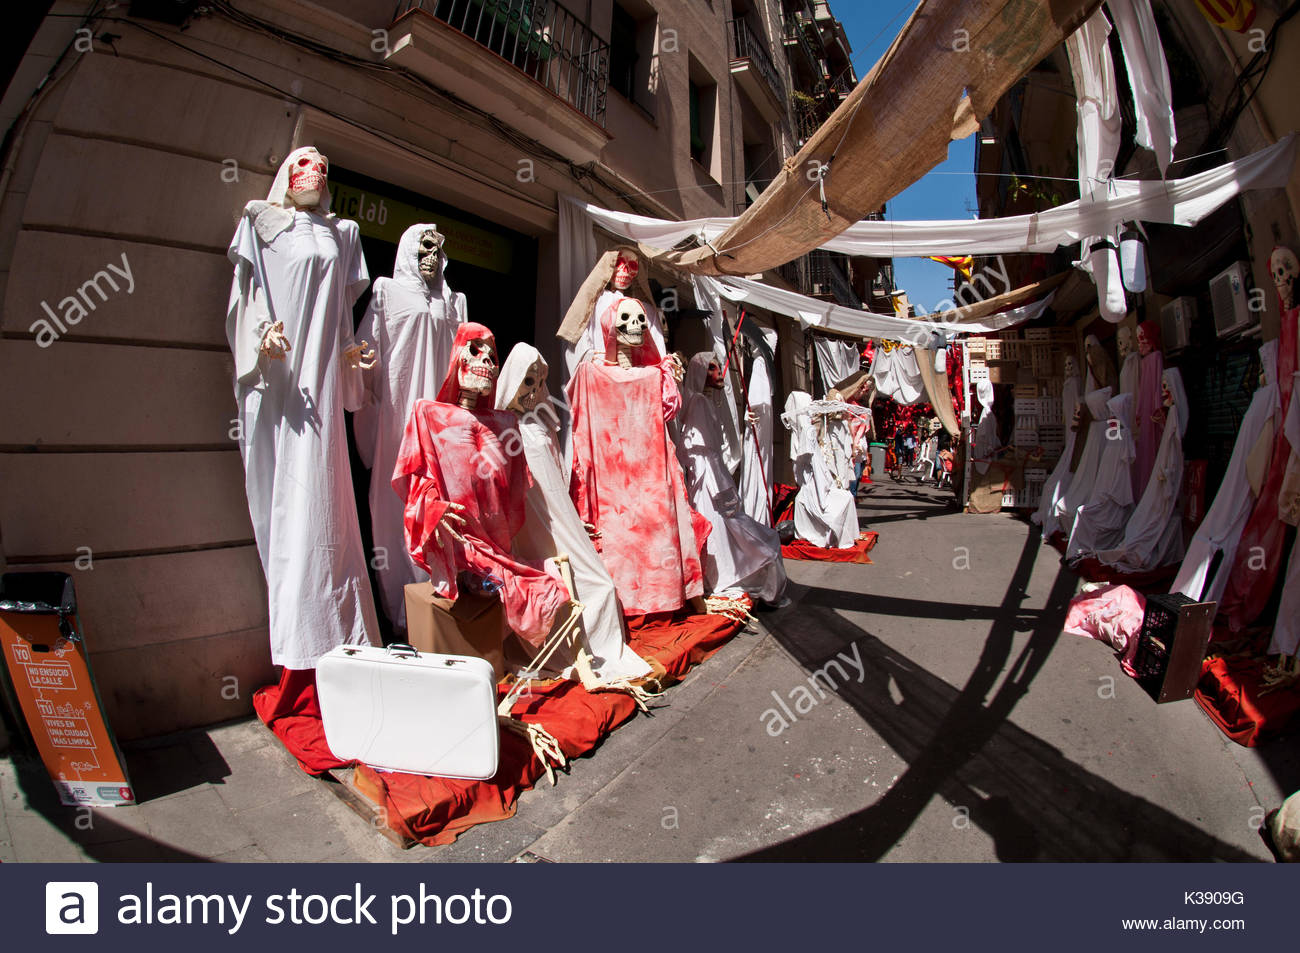 Fiestas de Gracia, Peligro Street, Gracia District, Barcelona, Spain - Stock Image